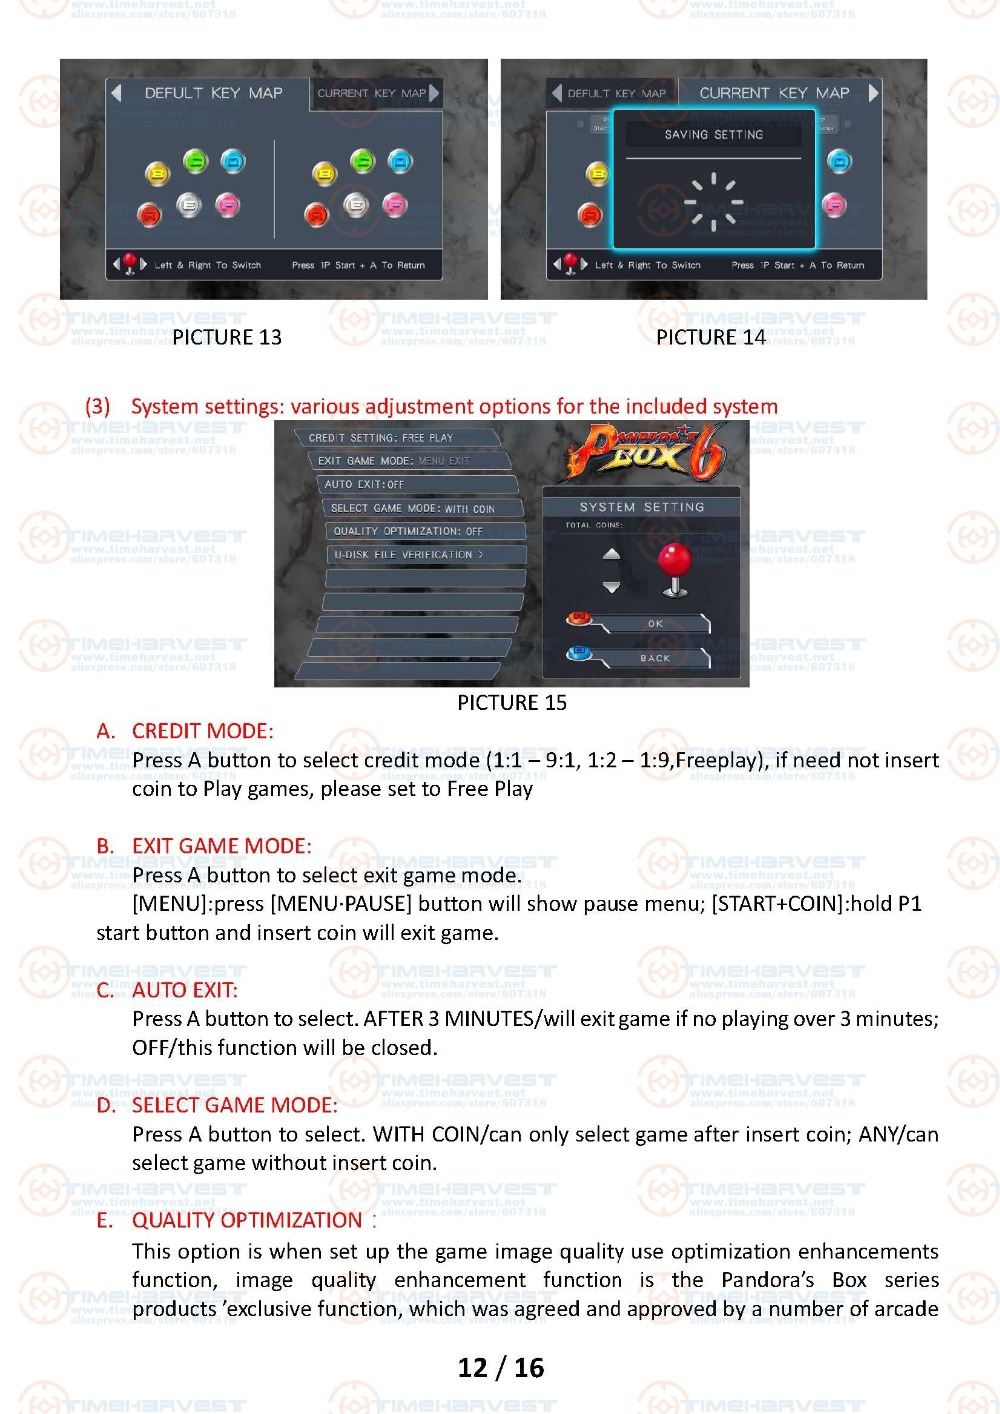 pandora's box6 arcade version user manual__12